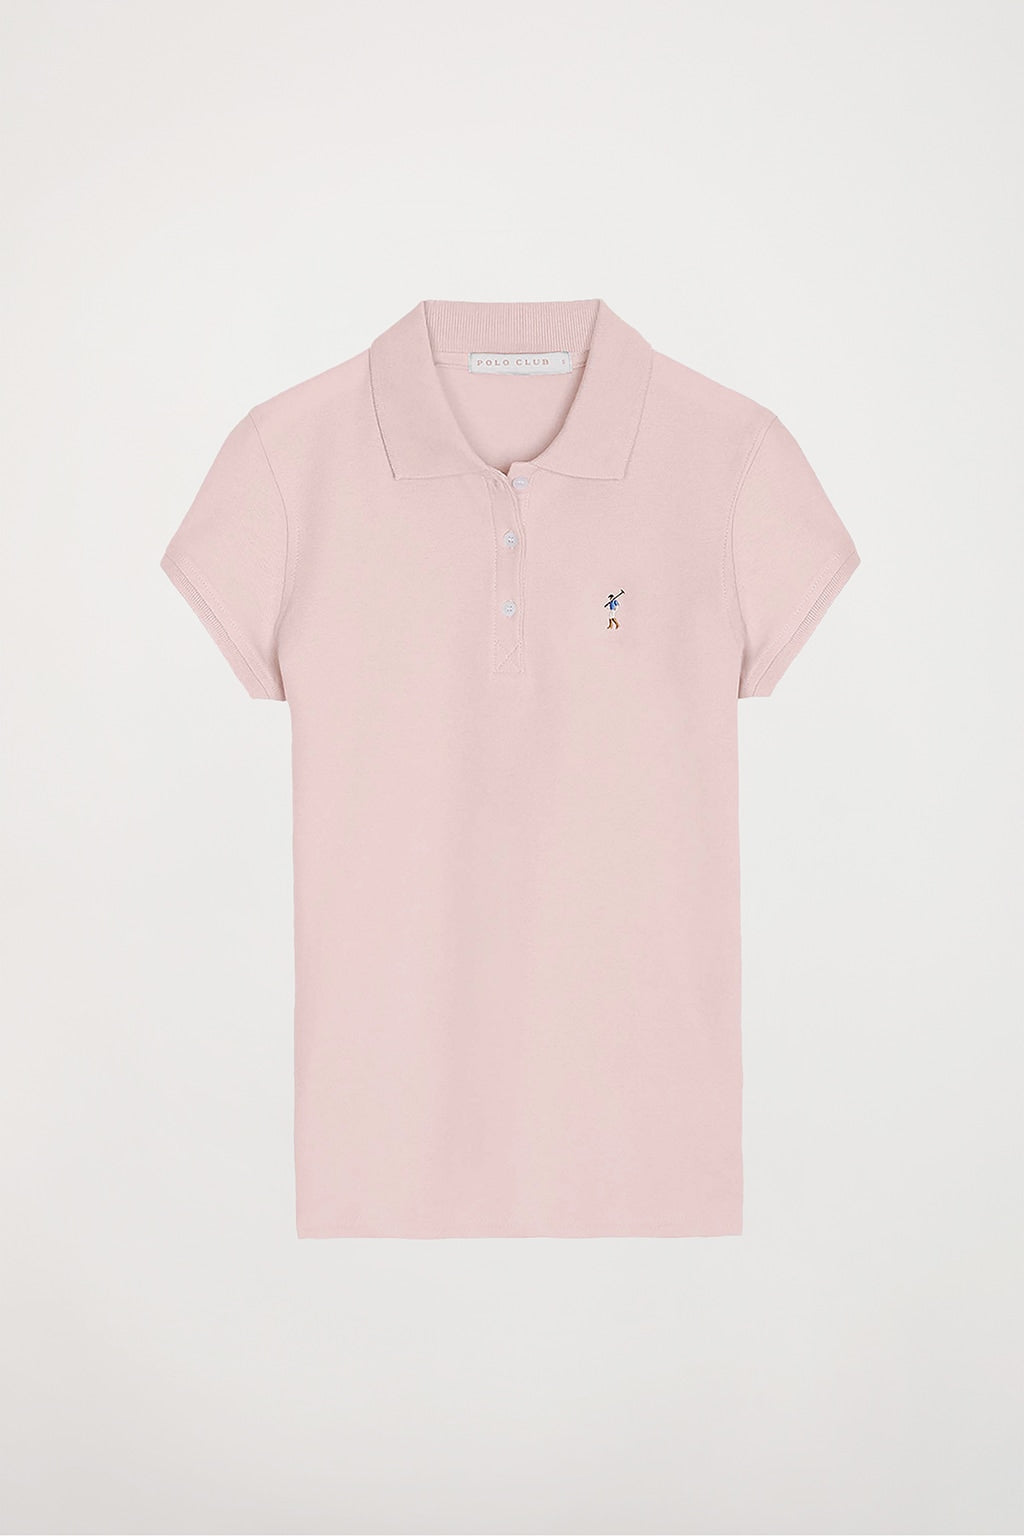 Pink polo shirt with colour embroidered logo